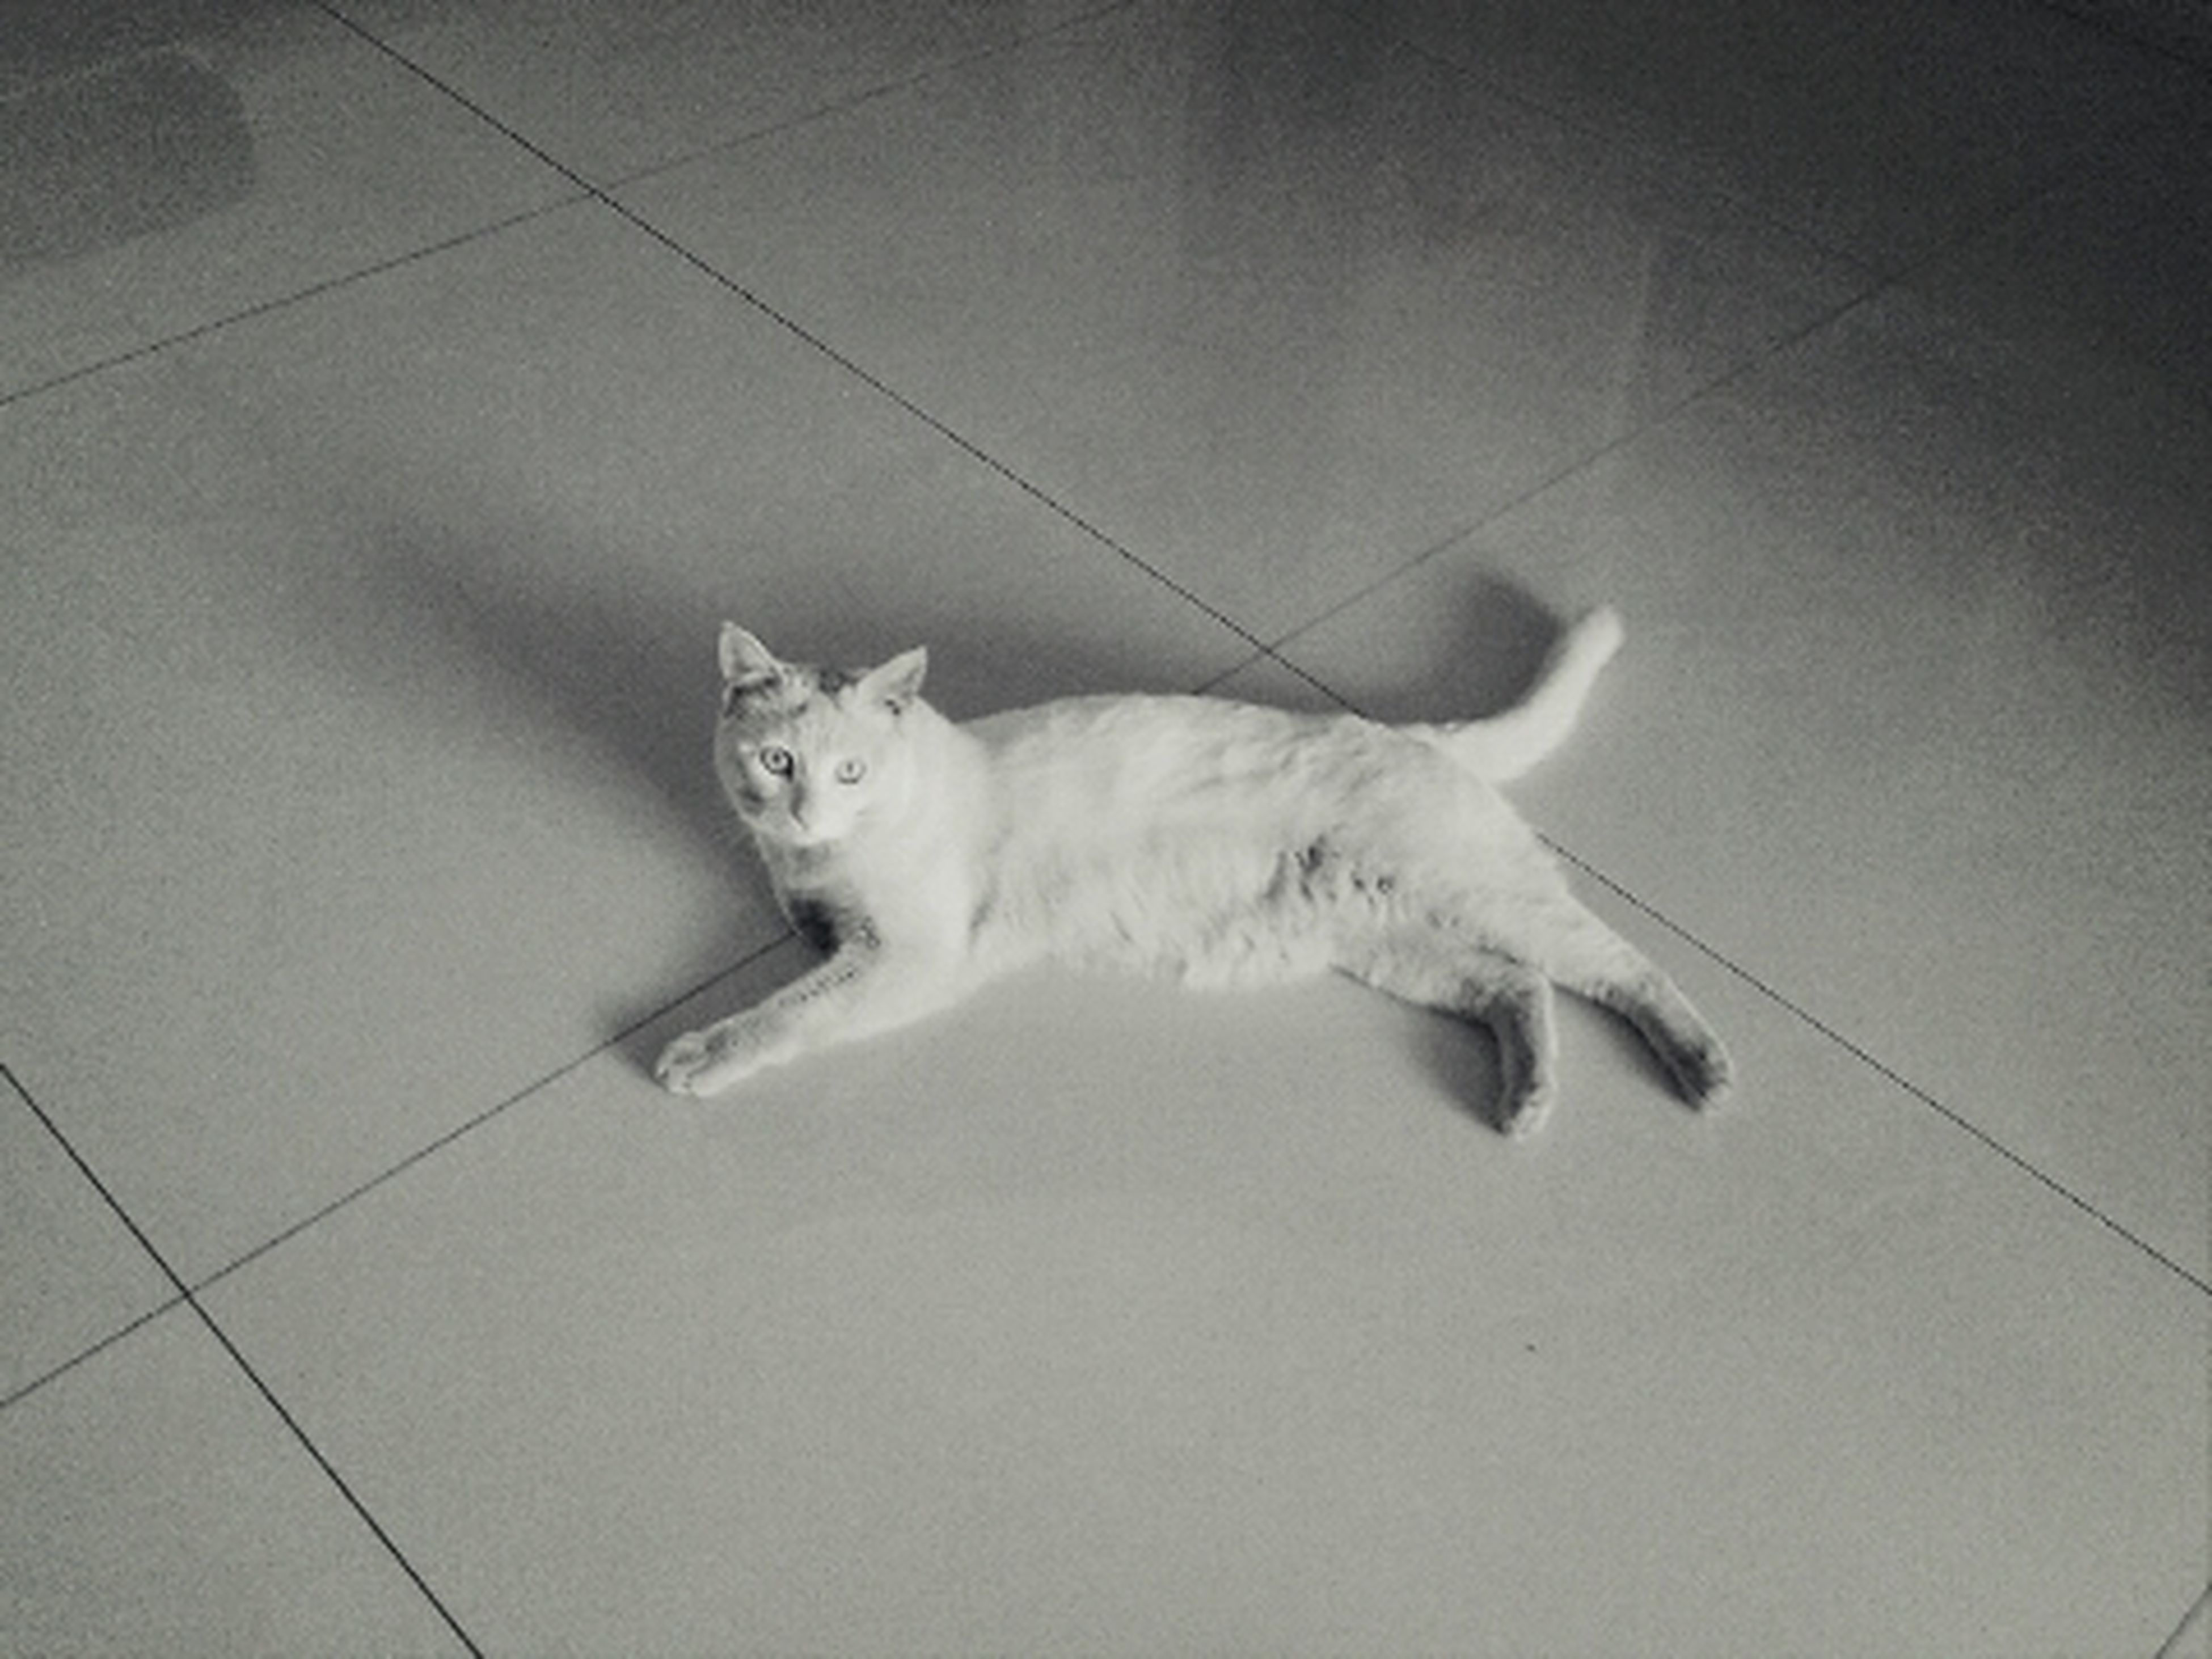 pets, domestic animals, animal themes, one animal, domestic cat, mammal, cat, indoors, feline, relaxation, full length, high angle view, white color, lying down, resting, portrait, no people, tiled floor, wall - building feature, zoology